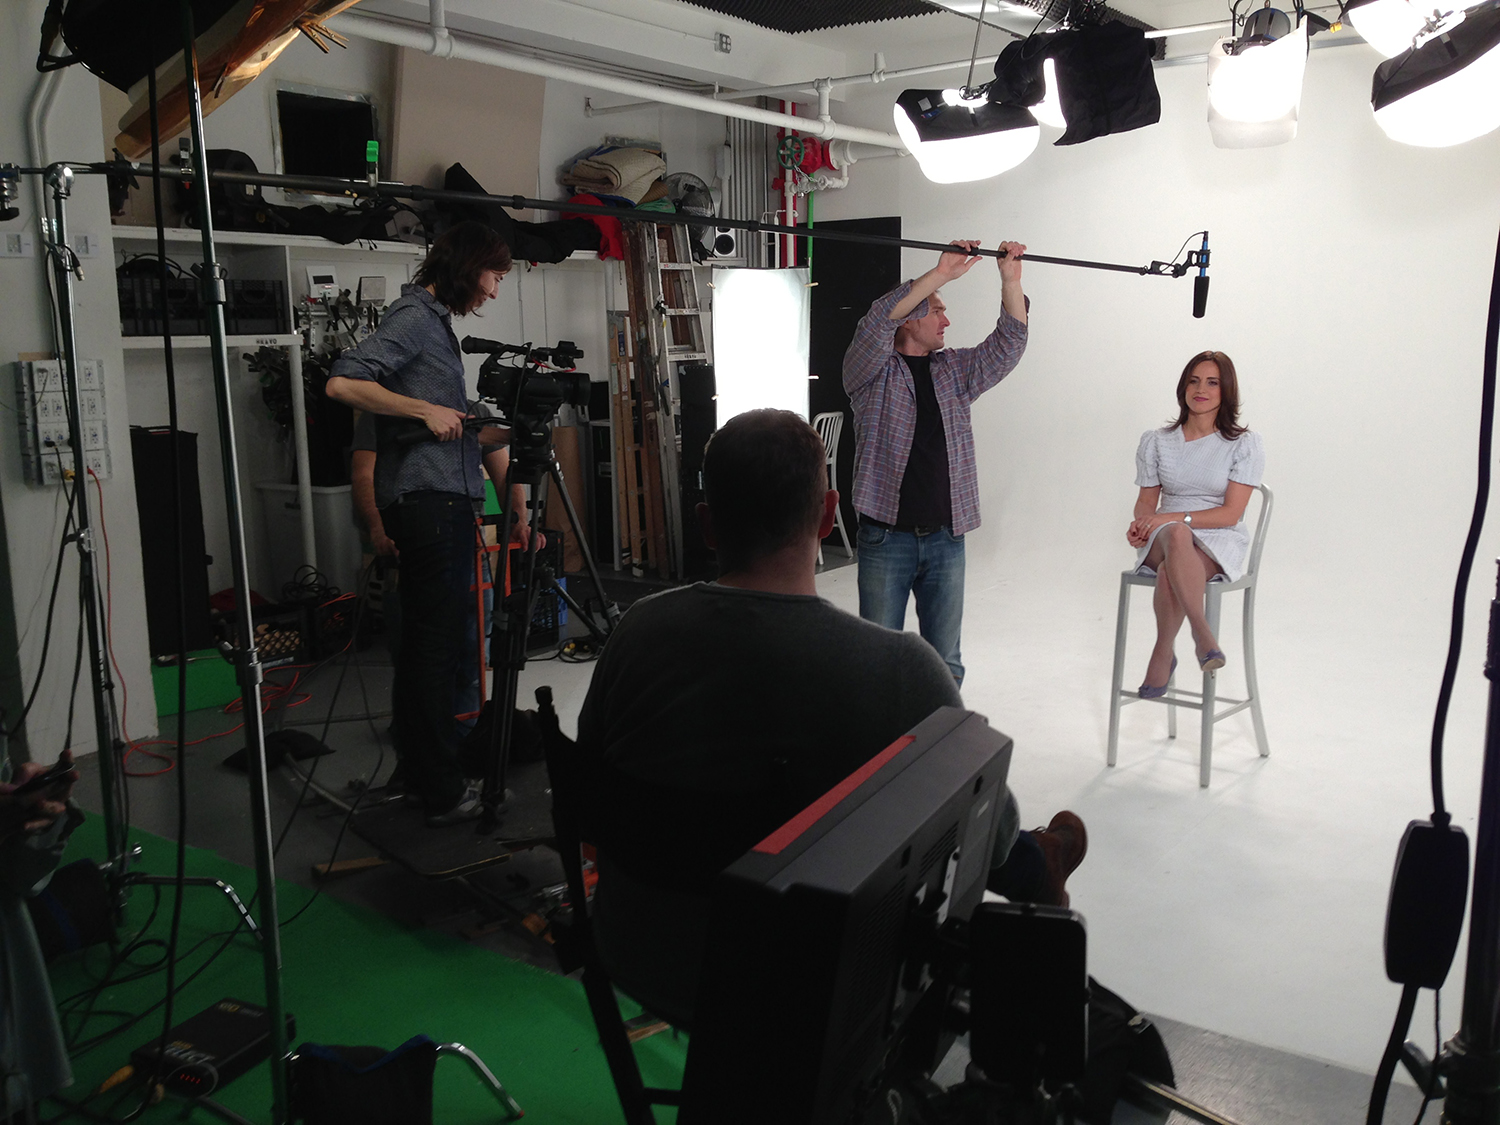 Anneliese on Camera, Dafydd Cooksey on Sound, Charles Chilton in the Director's Chair